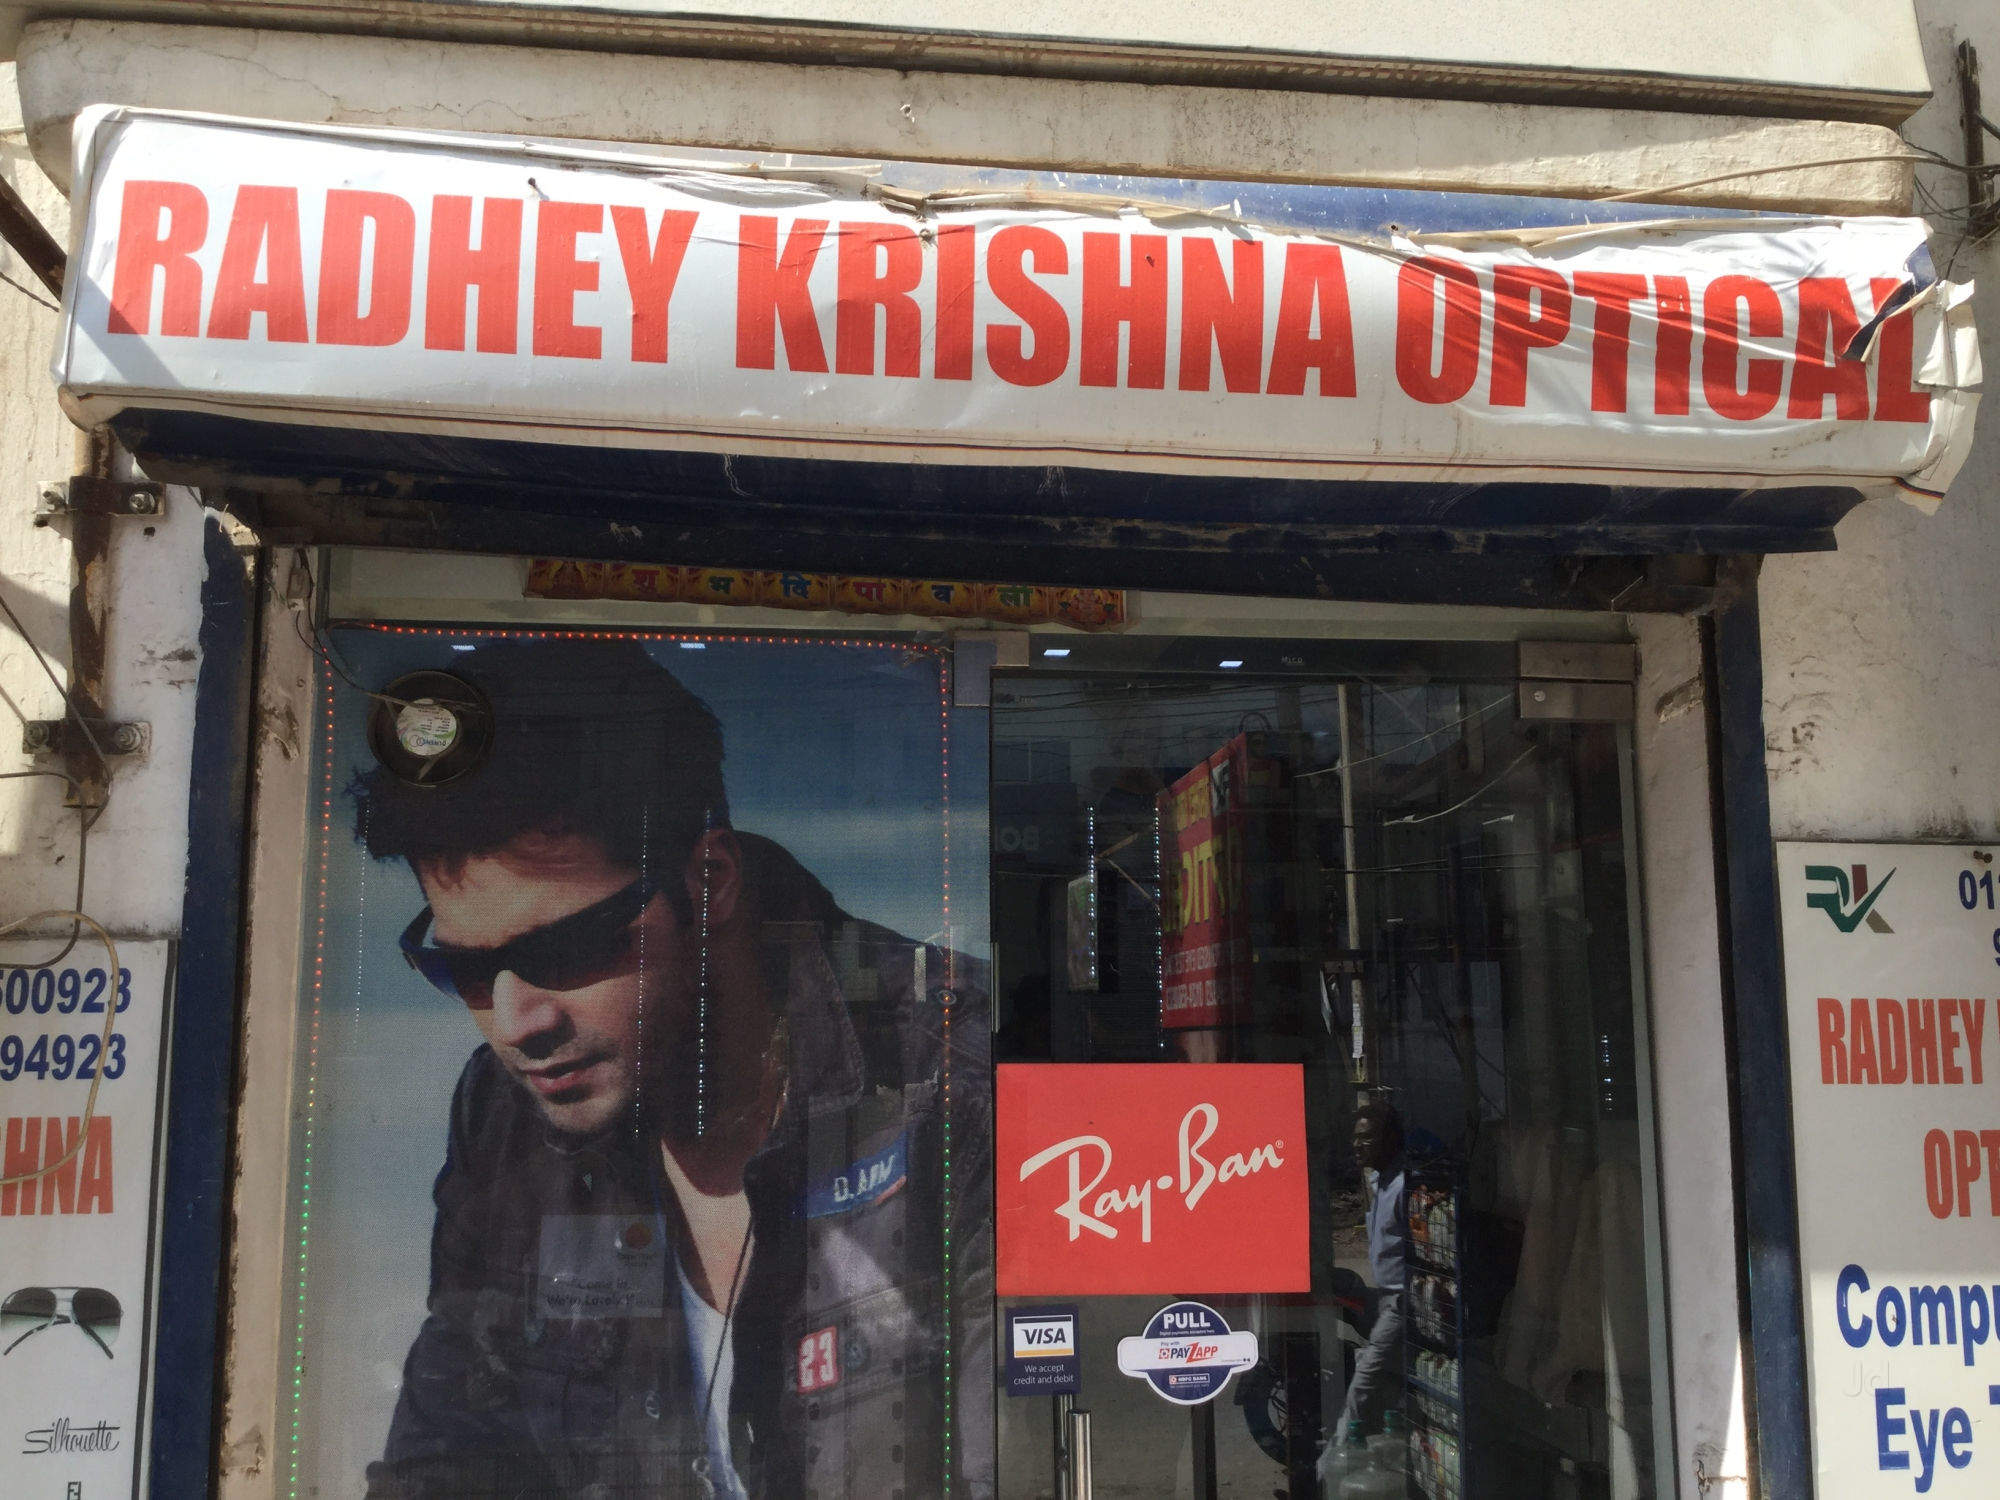 39dfe1e7e4be Top 100 Crizal Spectacle Lens Dealers in Udyog Vihar Industrial Area ...